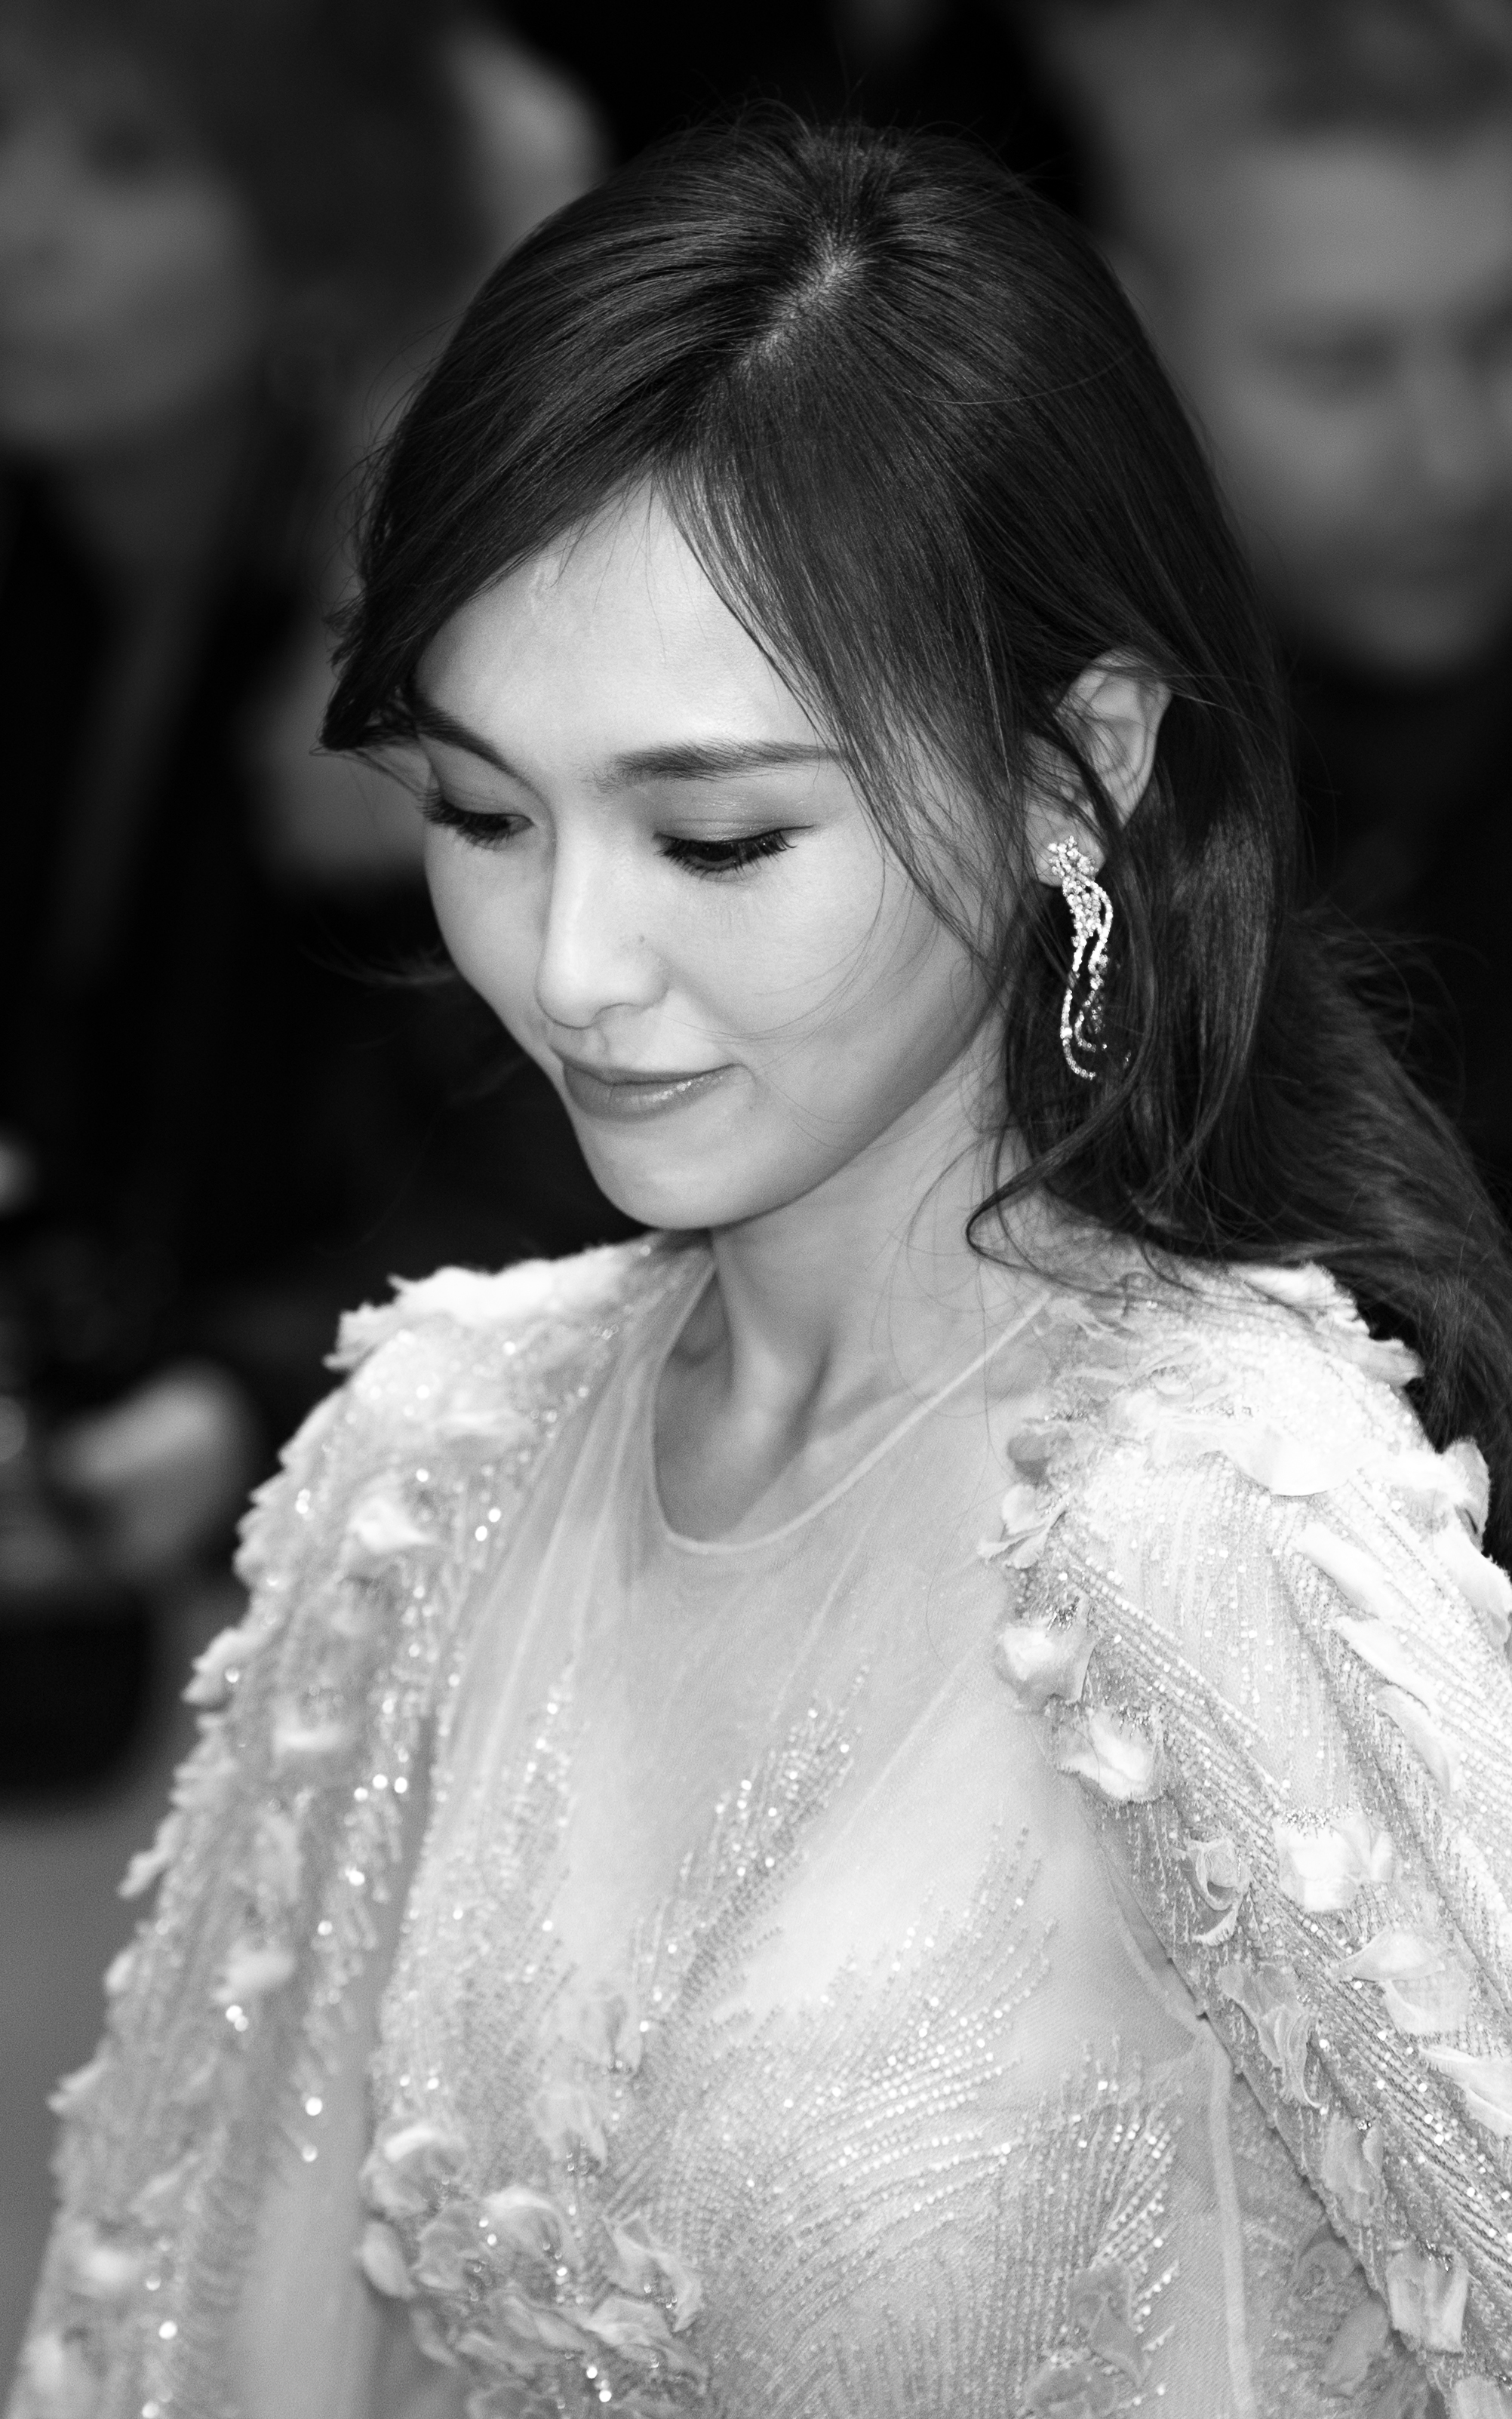 Tiffany Tang in 2017.